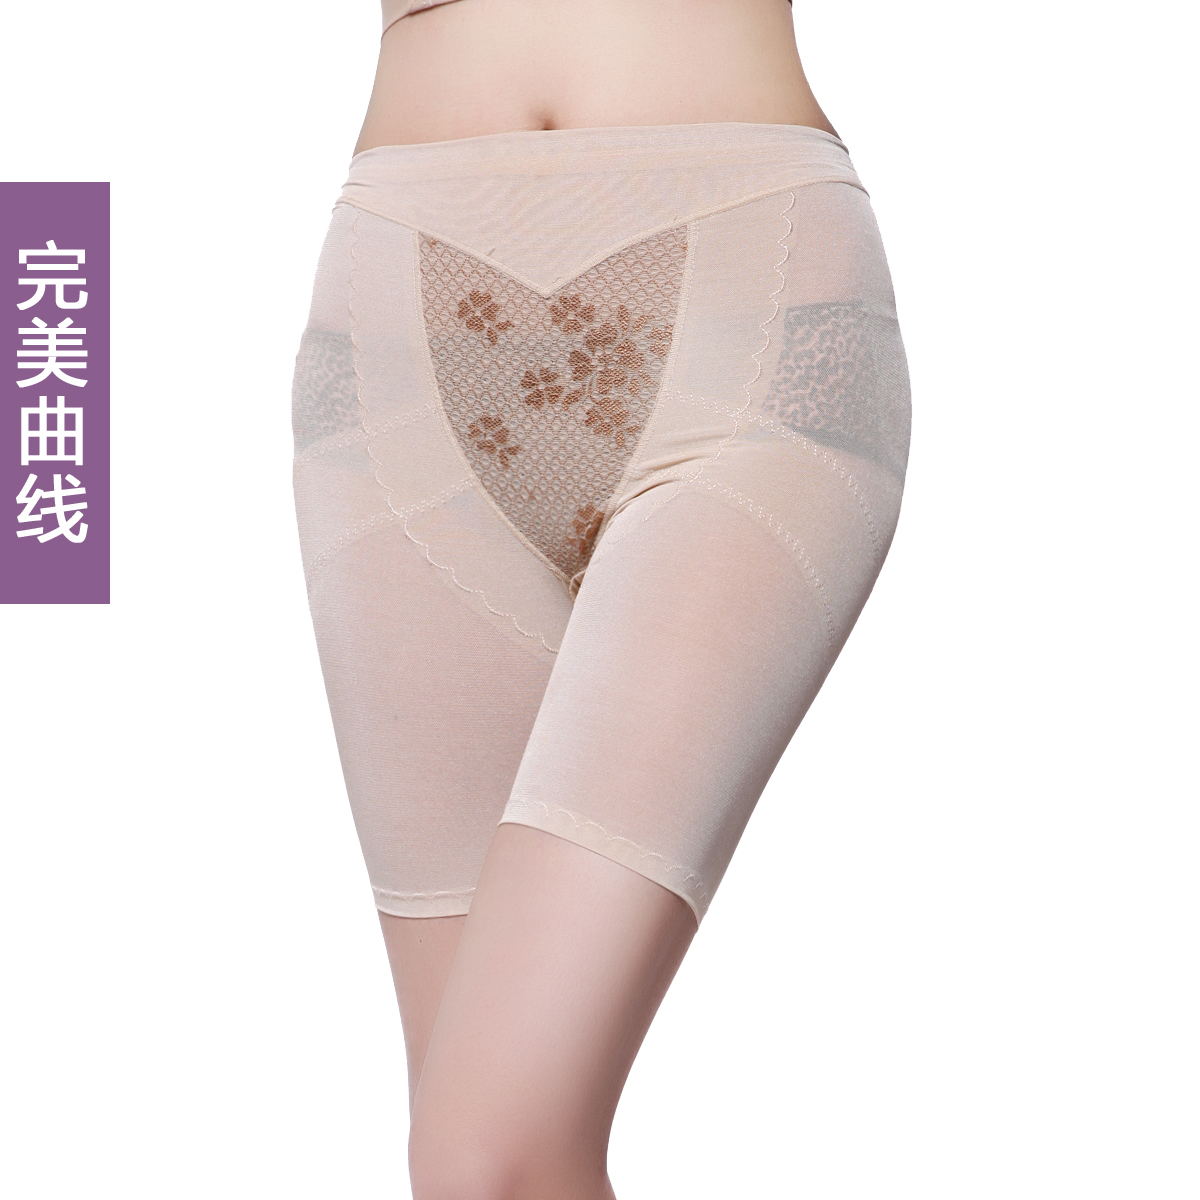 Perfect curve high waist butt-lifting body shaping pants slimming corset beauty care panties puerperal female 8301